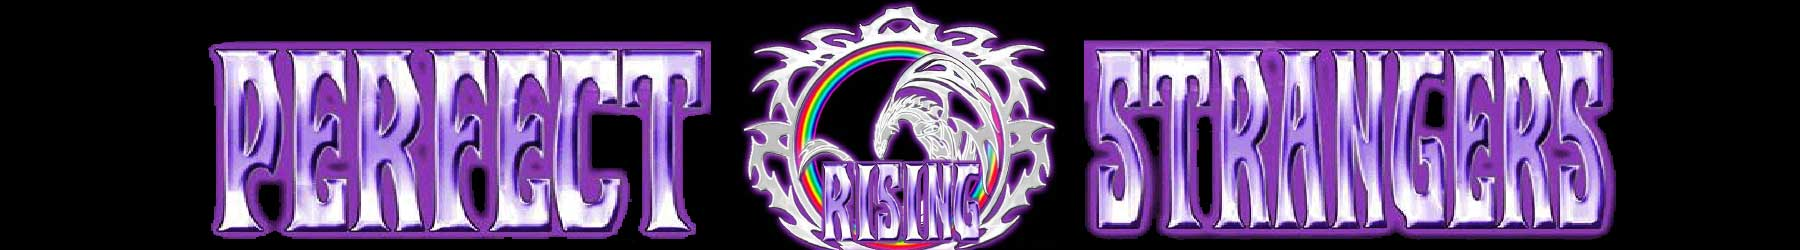 Perfect Strangers Rising - Deep Purple / Rainbow Tribute